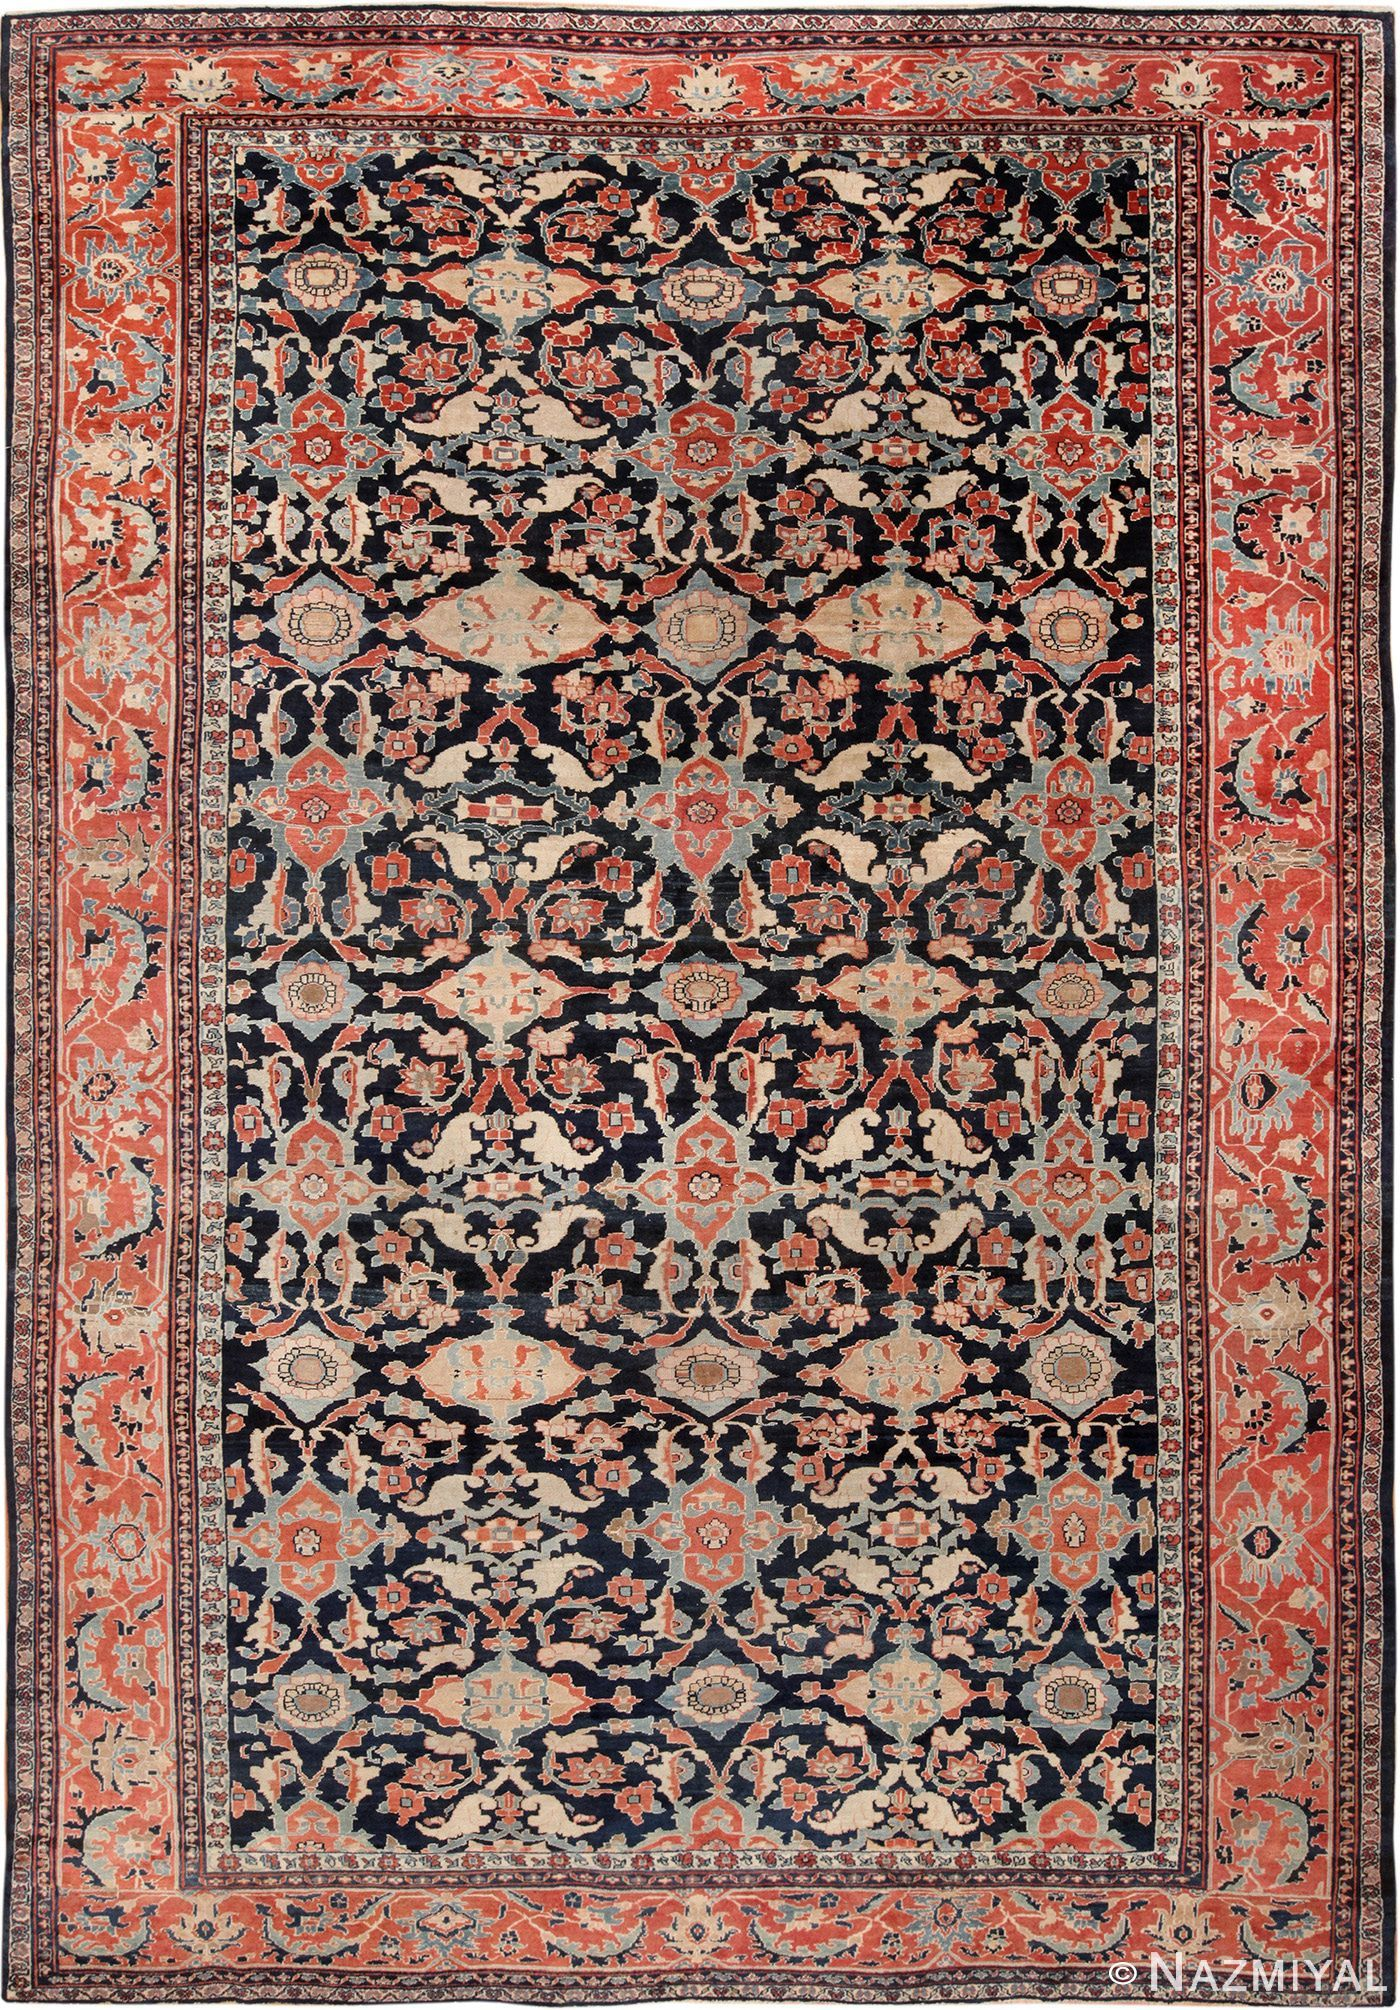 View this exciting large size navy blue antique persian sultanabad rug 49678 which is available for sale at nazmiyal antique rugs located in the heart of